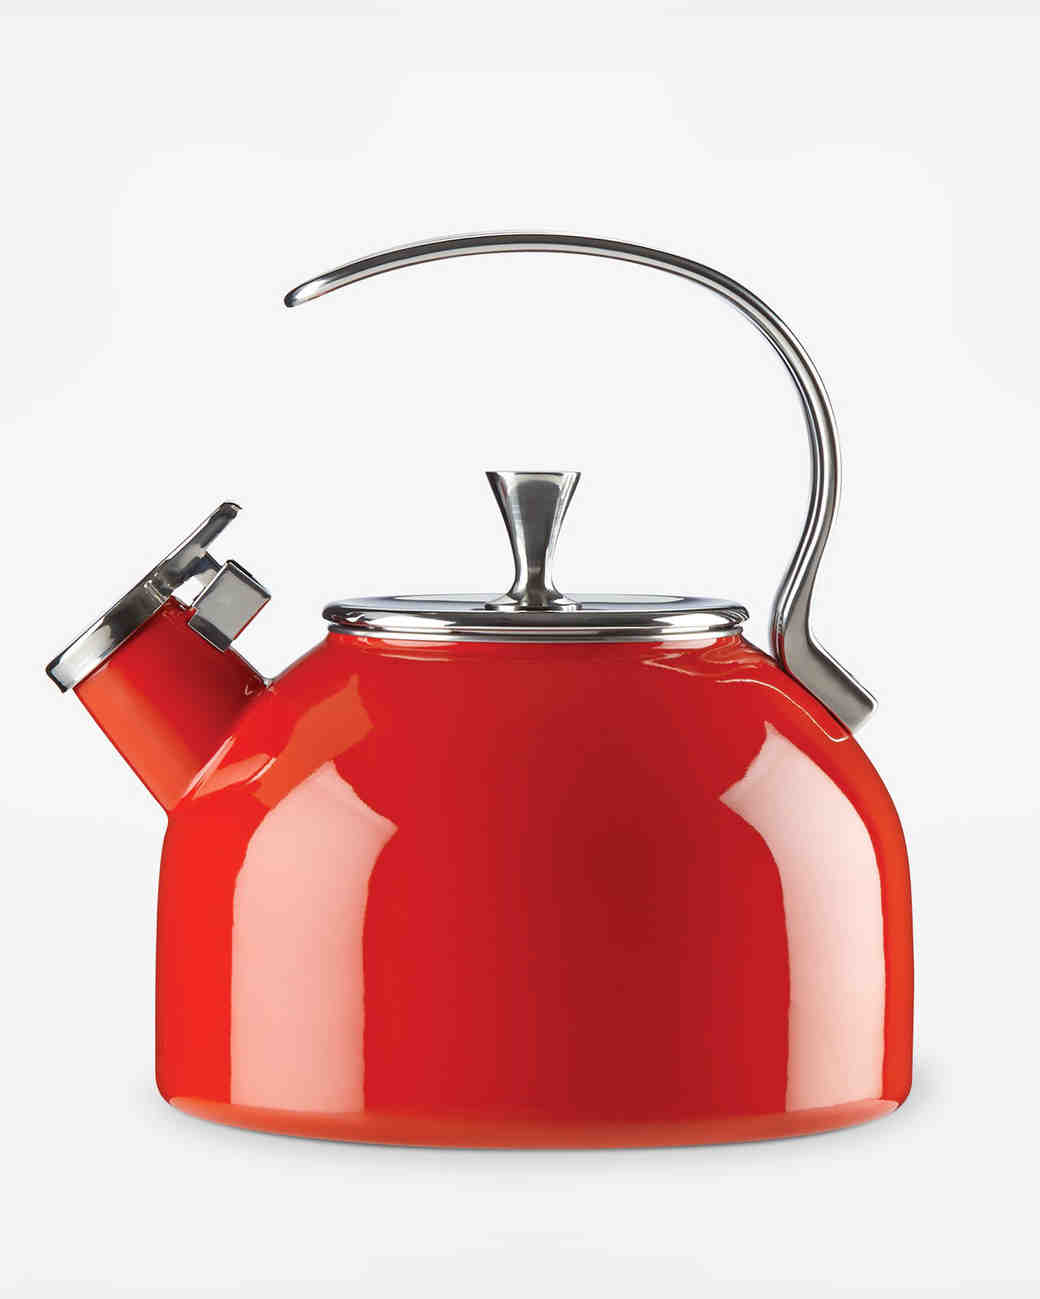 kate spade new york red tea kettle